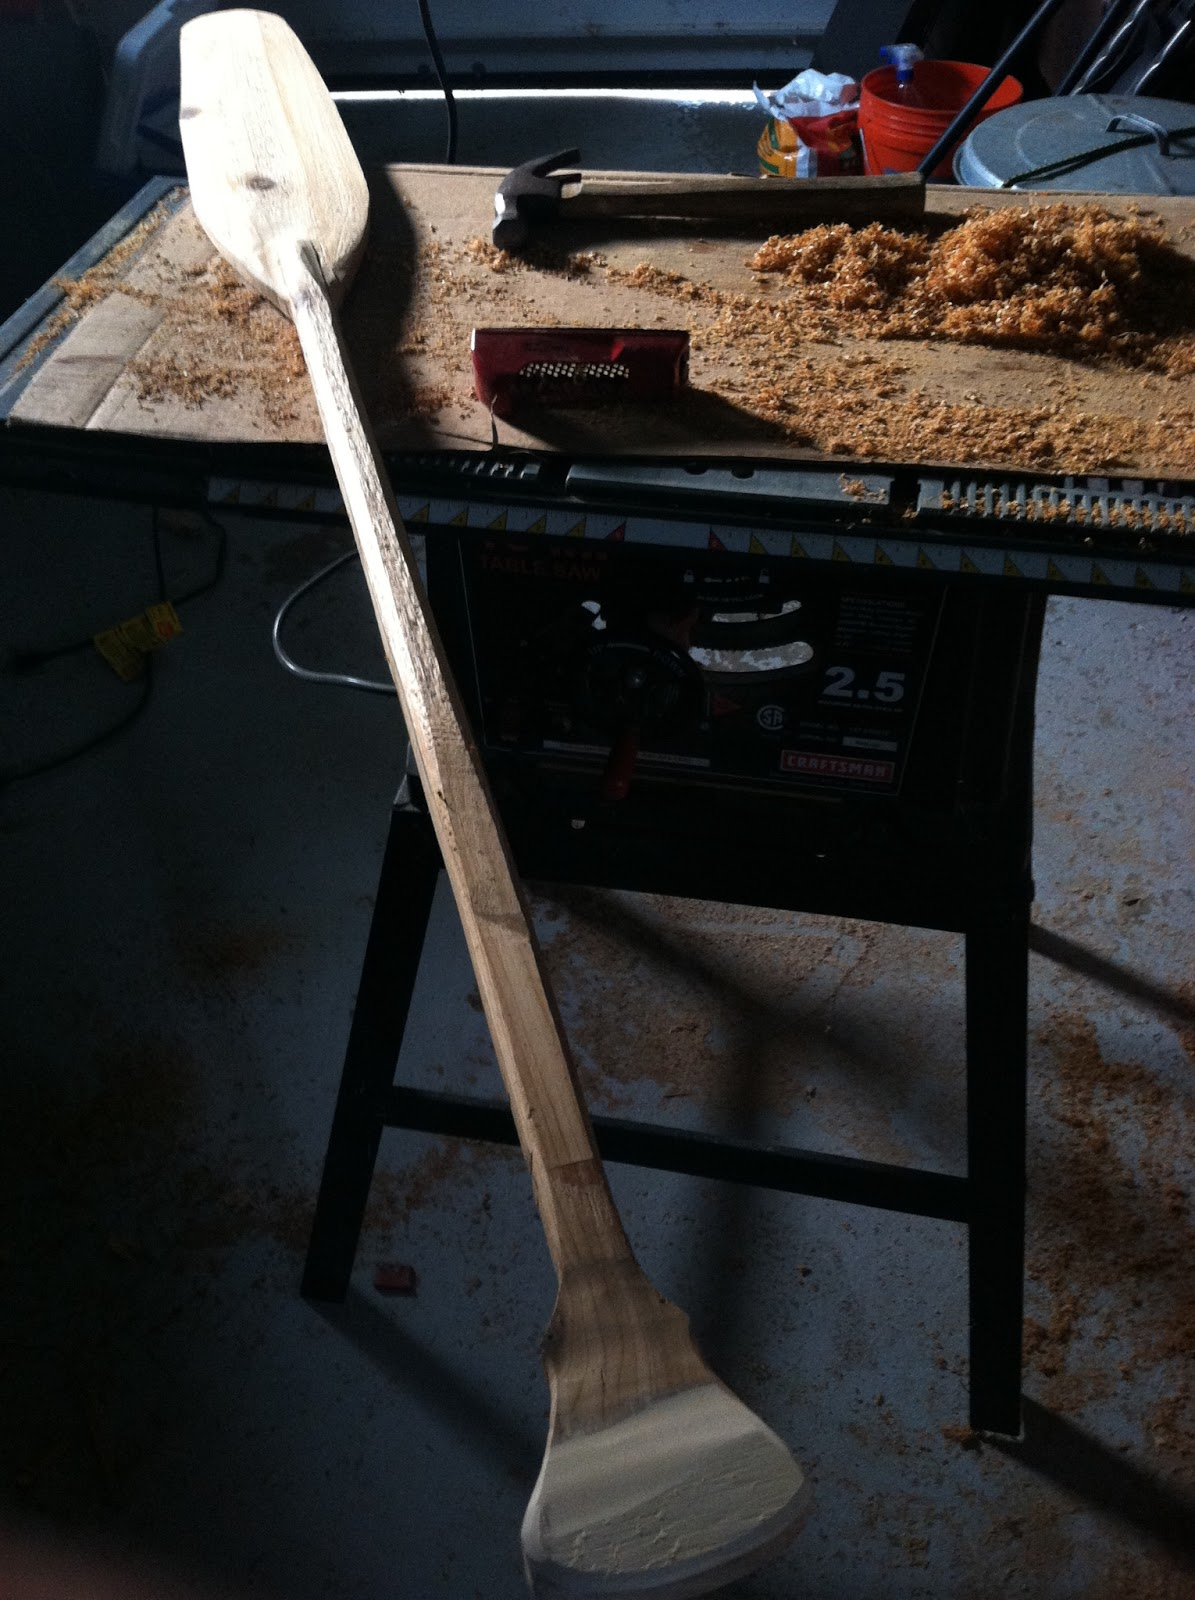 This is my first attempt at carving a paddle.  I thought traditional ottertail paddles would be a great way to get in the spirit of this journey.  This one is made from a single piece of red cedar, although I laminated the handle for additional strength.